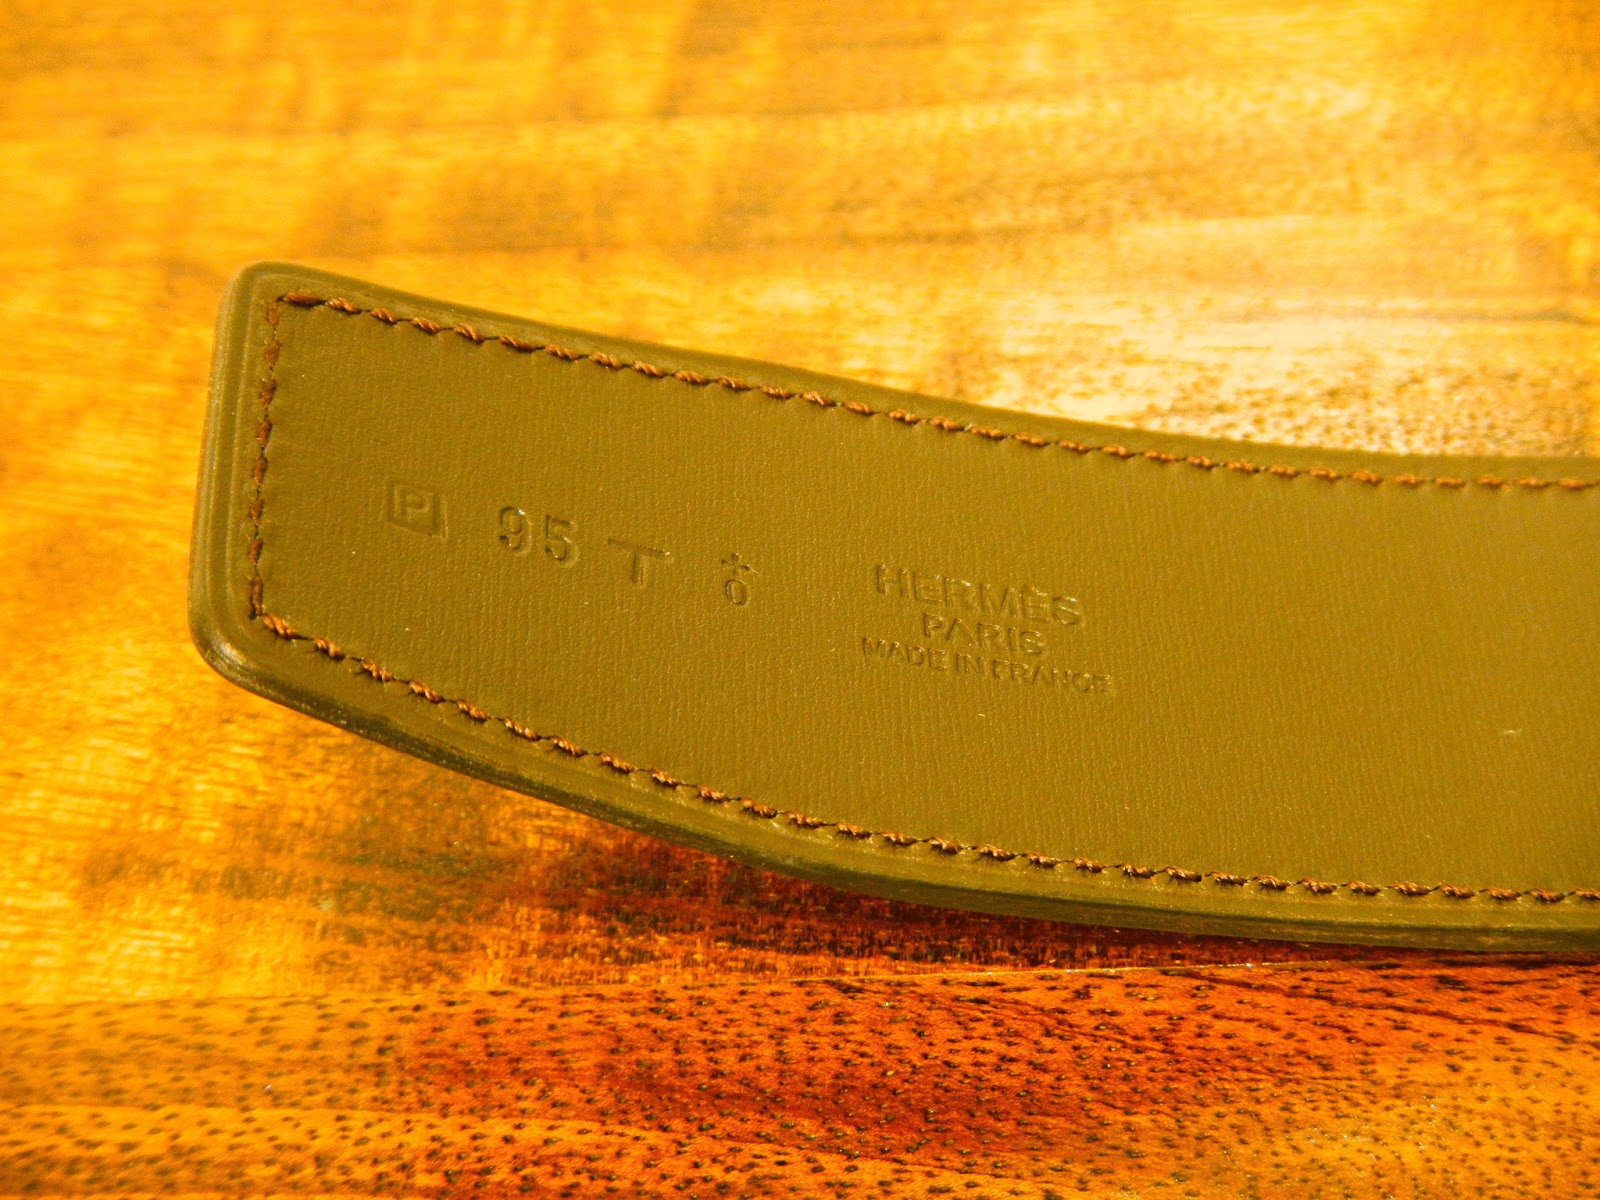 hermes h belt price france